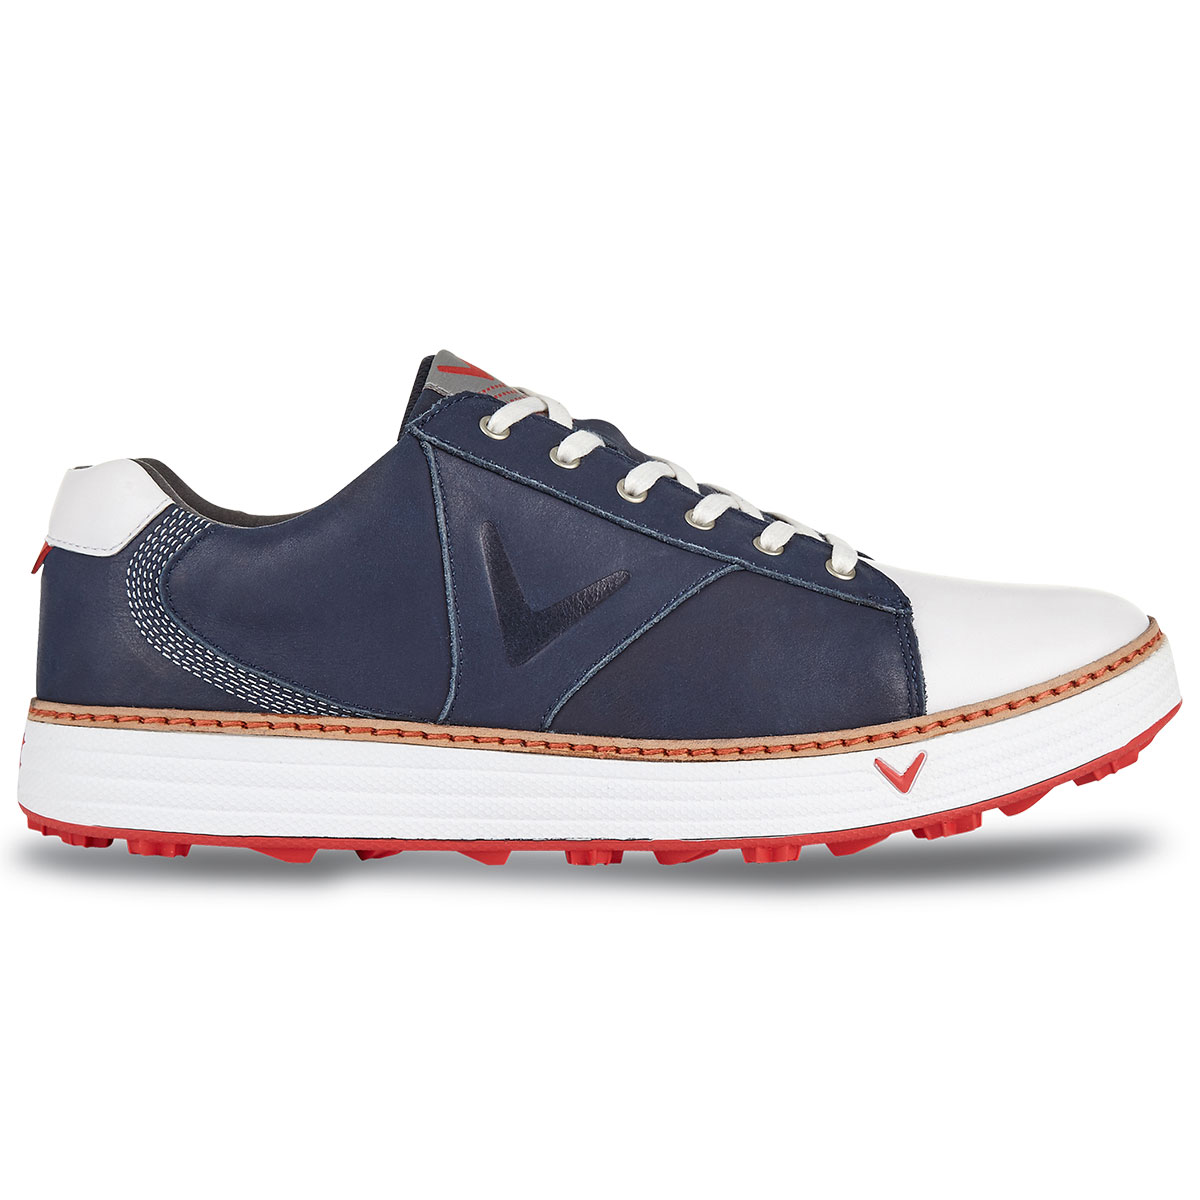 Callaway-Golf-2017-Mens-Del-Mar-Retro-Golf-Shoes-Waterproof-Engery-Return